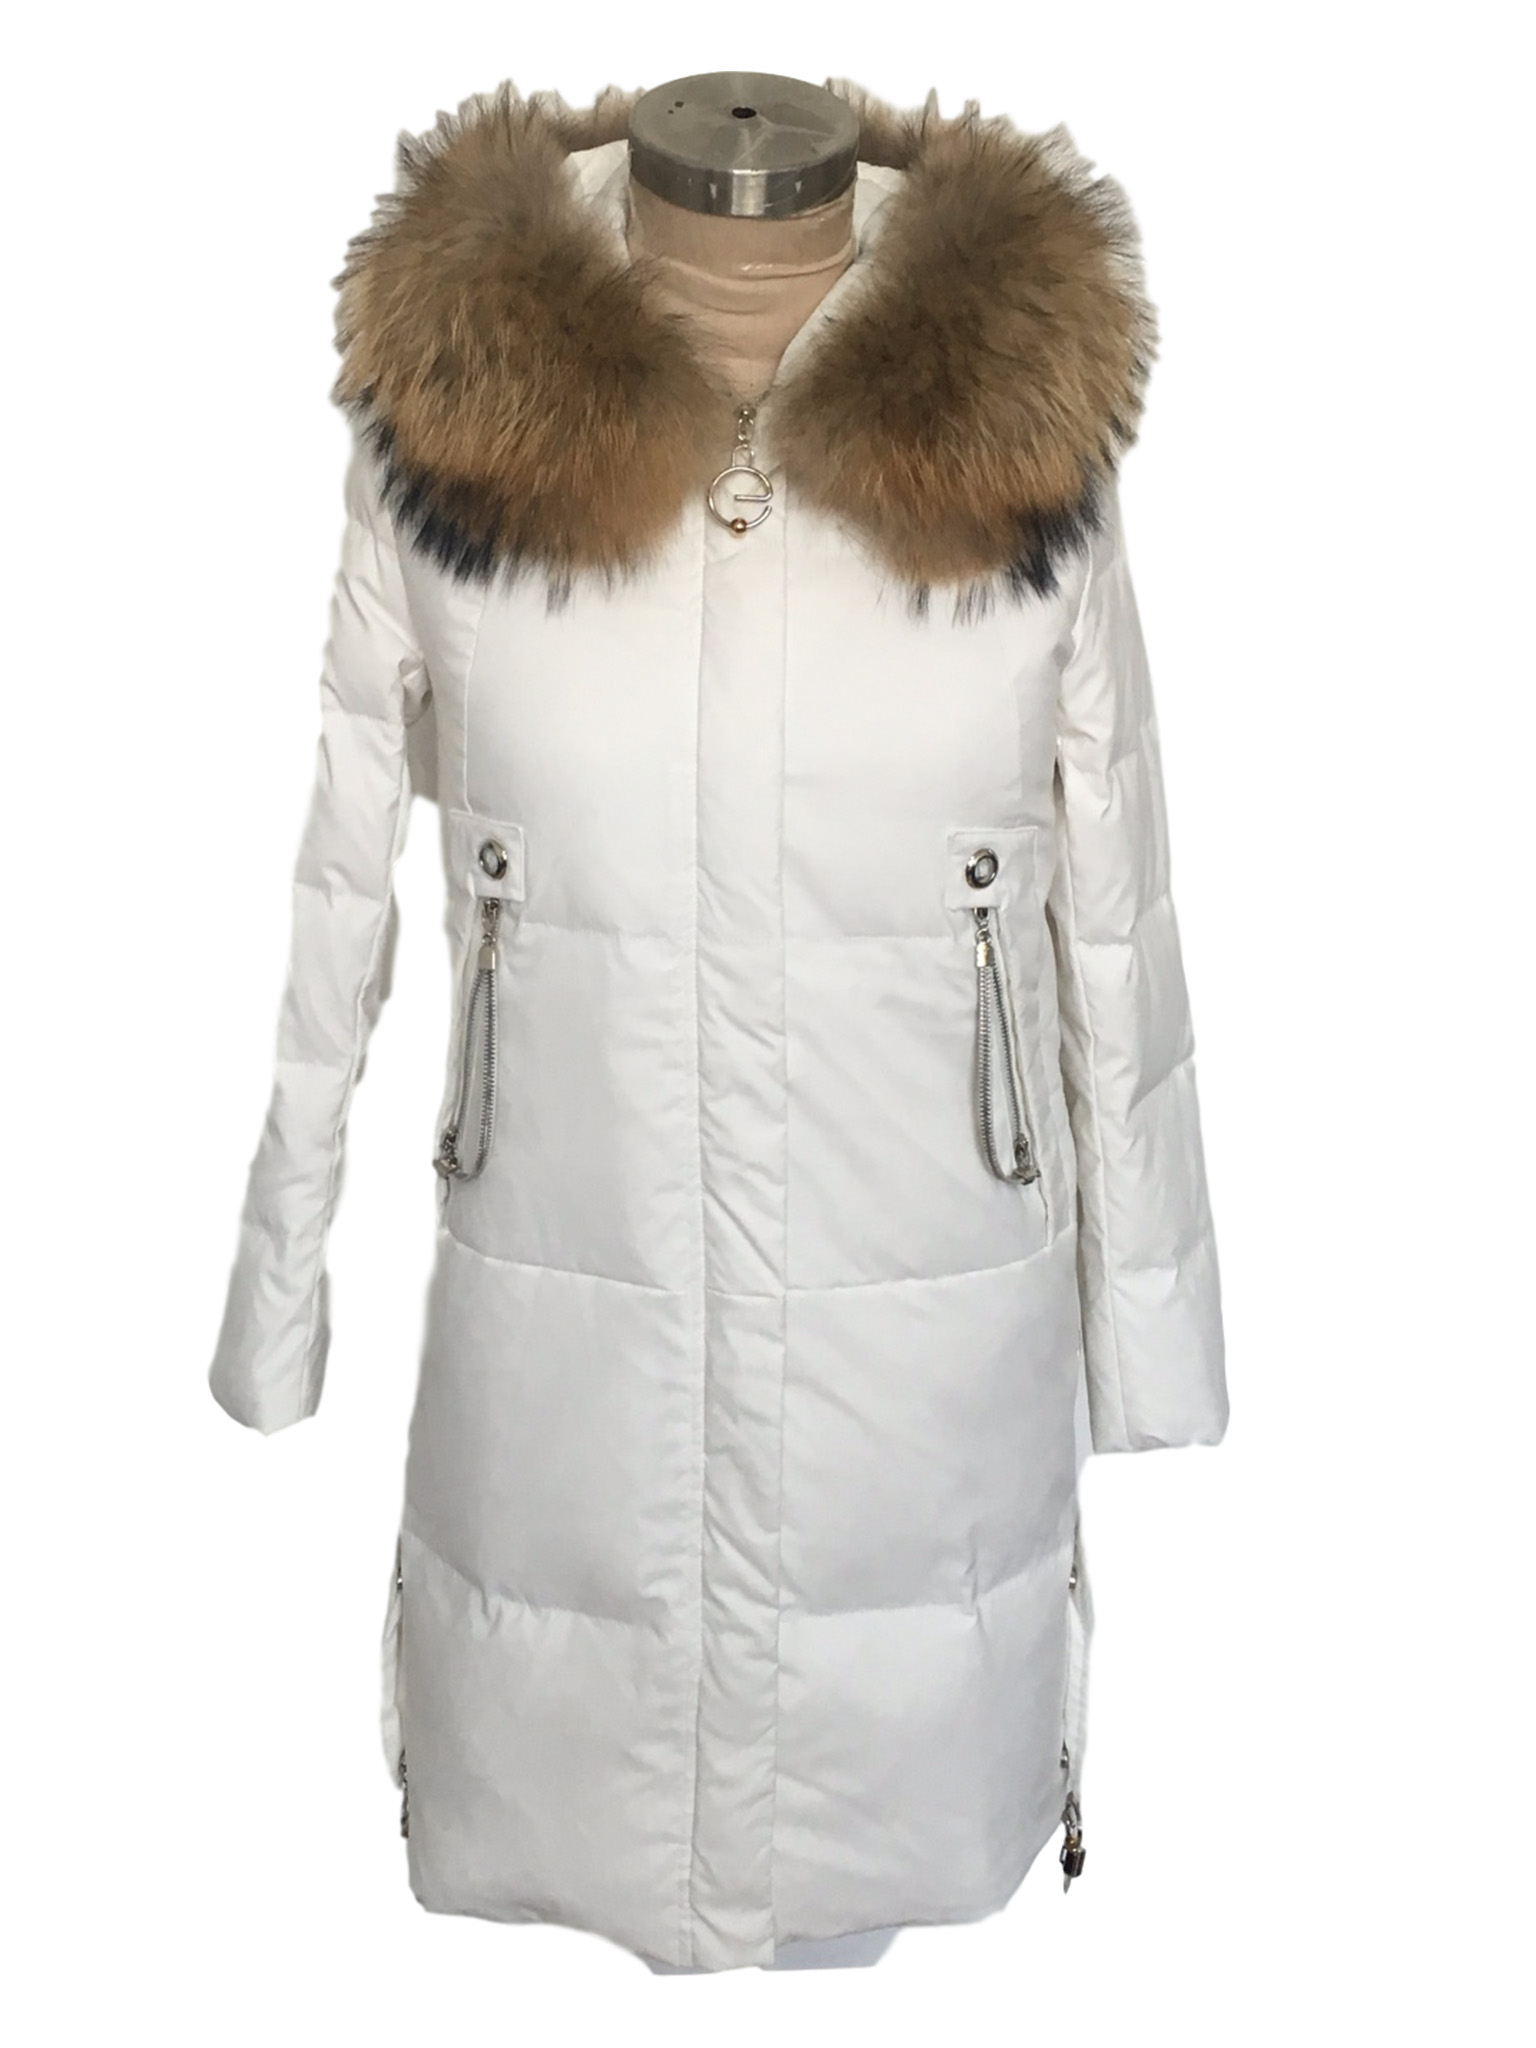 down jacket women,mens down jacket,down coat women,Huarui export